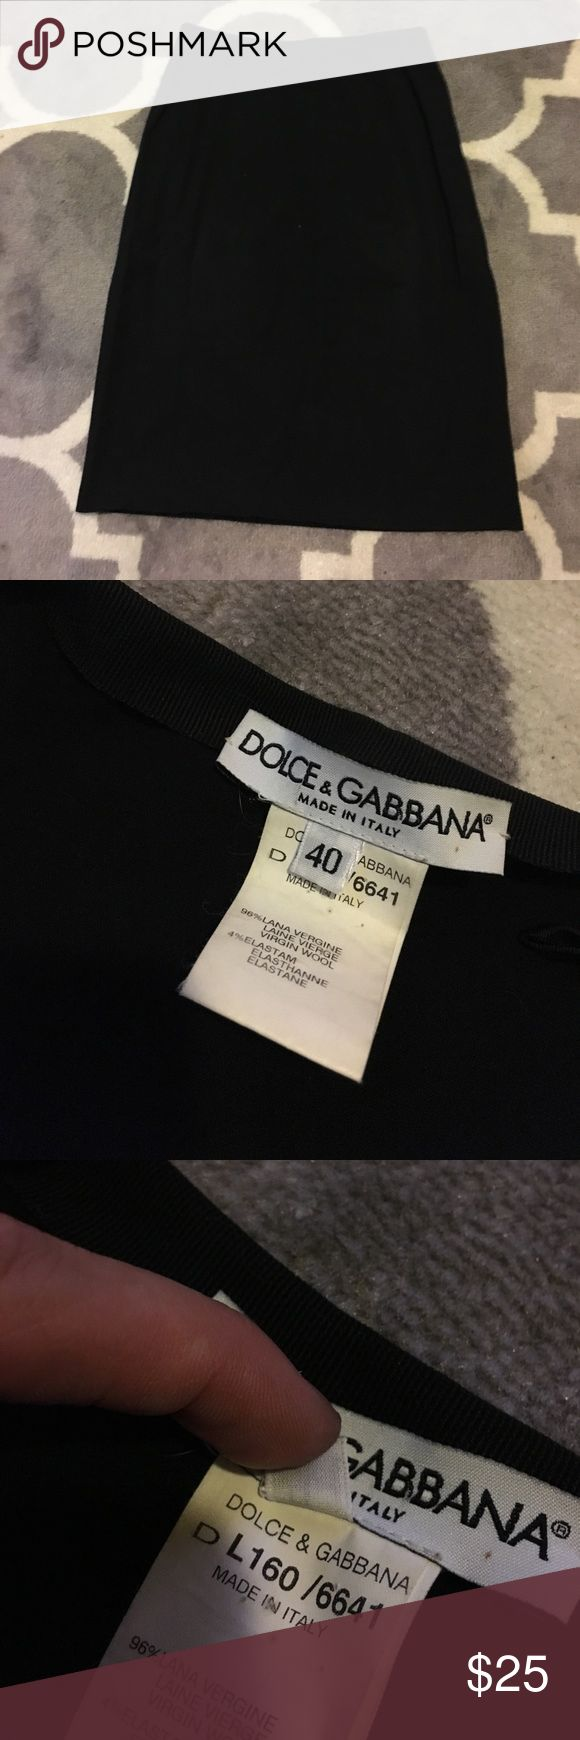 DOLCE & GABBANA black skirt Just like a little black dress, every girl needs a little black skirt! It reads size (Italian) 40- it is definitely XS (0-4?) .I don't know the exact year, but I'd say it's closer to being vintage, high waisted style. I bought it second hand for $59 a few years ago. Dolce & Gabbana Skirts Pencil